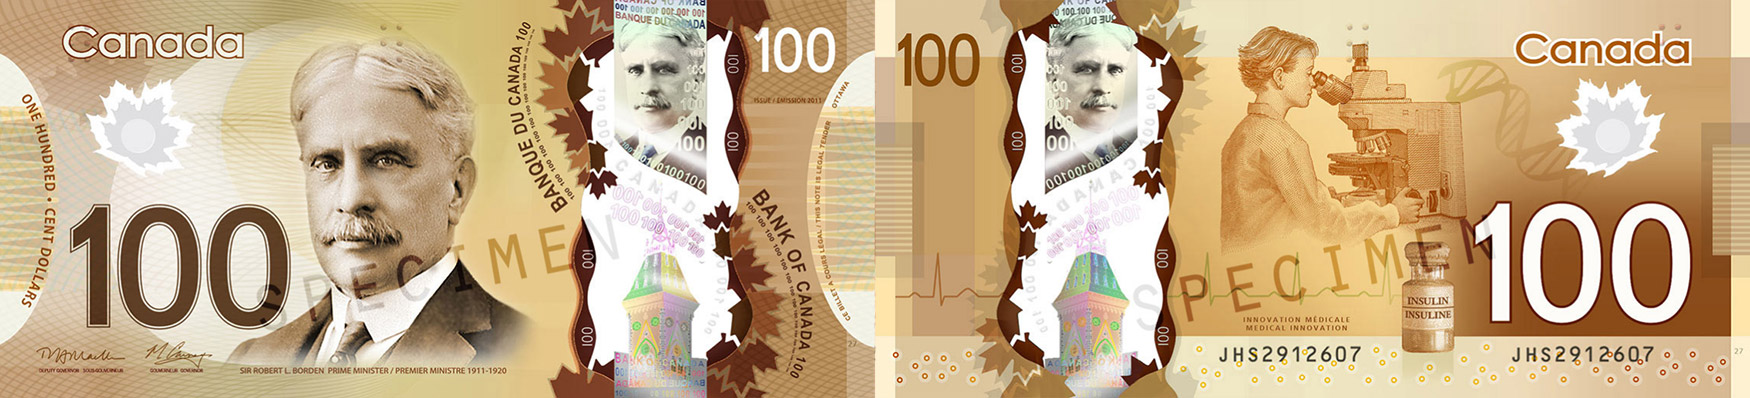 100 dollars 2011 to 2016 - Canada Banknote